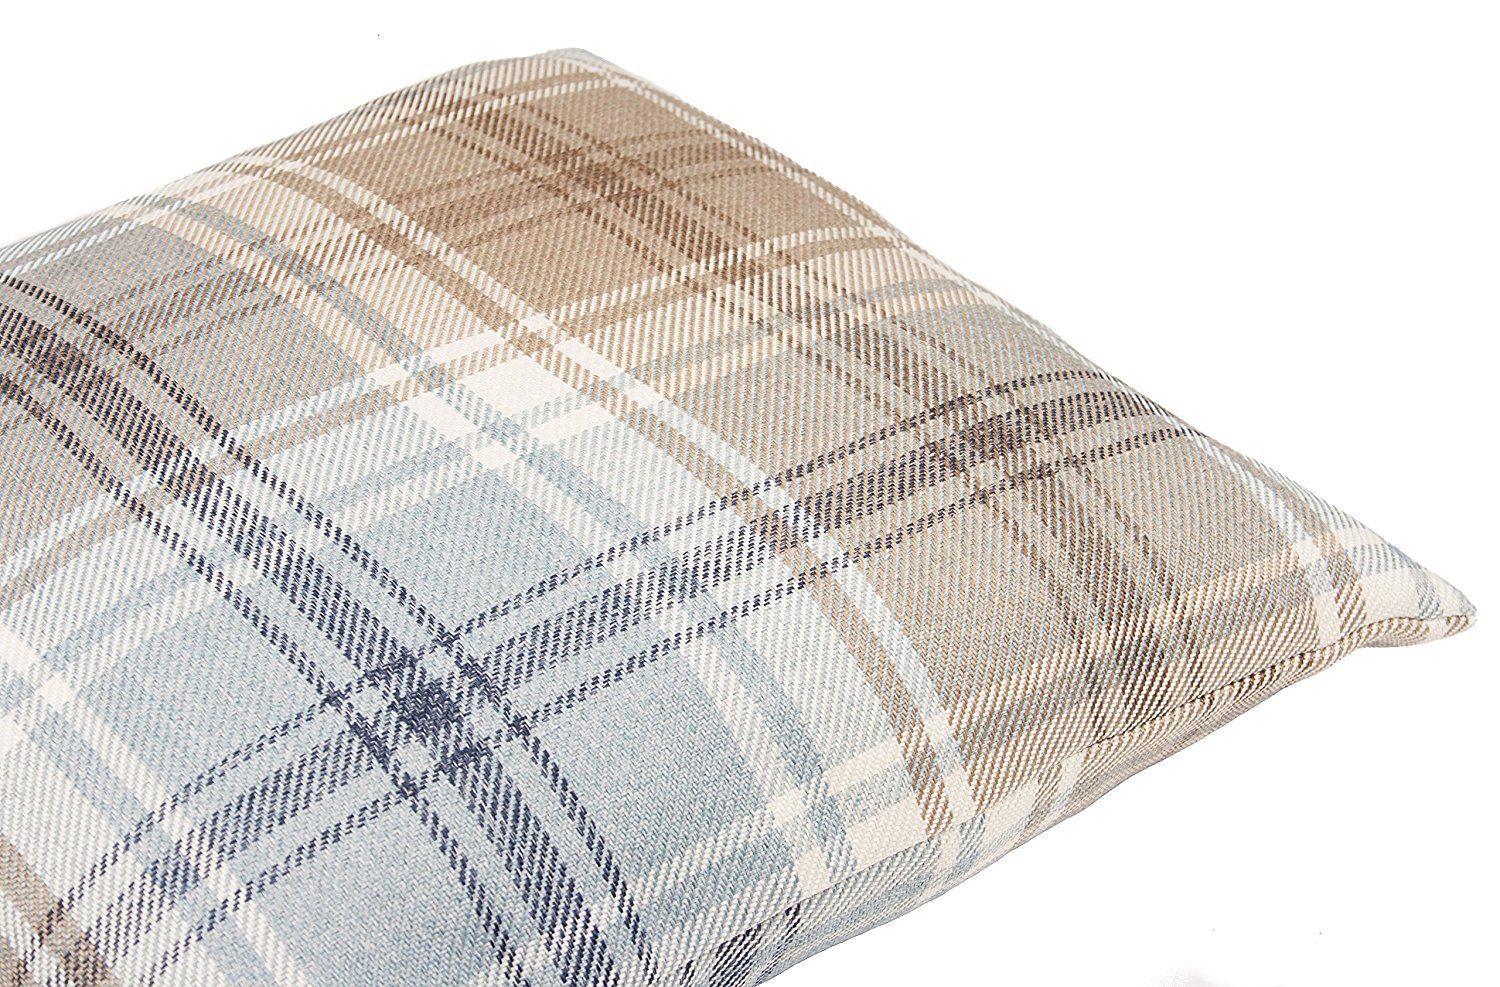 Decorative Striped Woven Cushion Sham Case for Sofa and Bedroom Country Cabin Accent Decor Square 26 x 26 in Tartan Plaid Throw Pillow Cover in Duck Egg Blue McAlister Textiles Angus